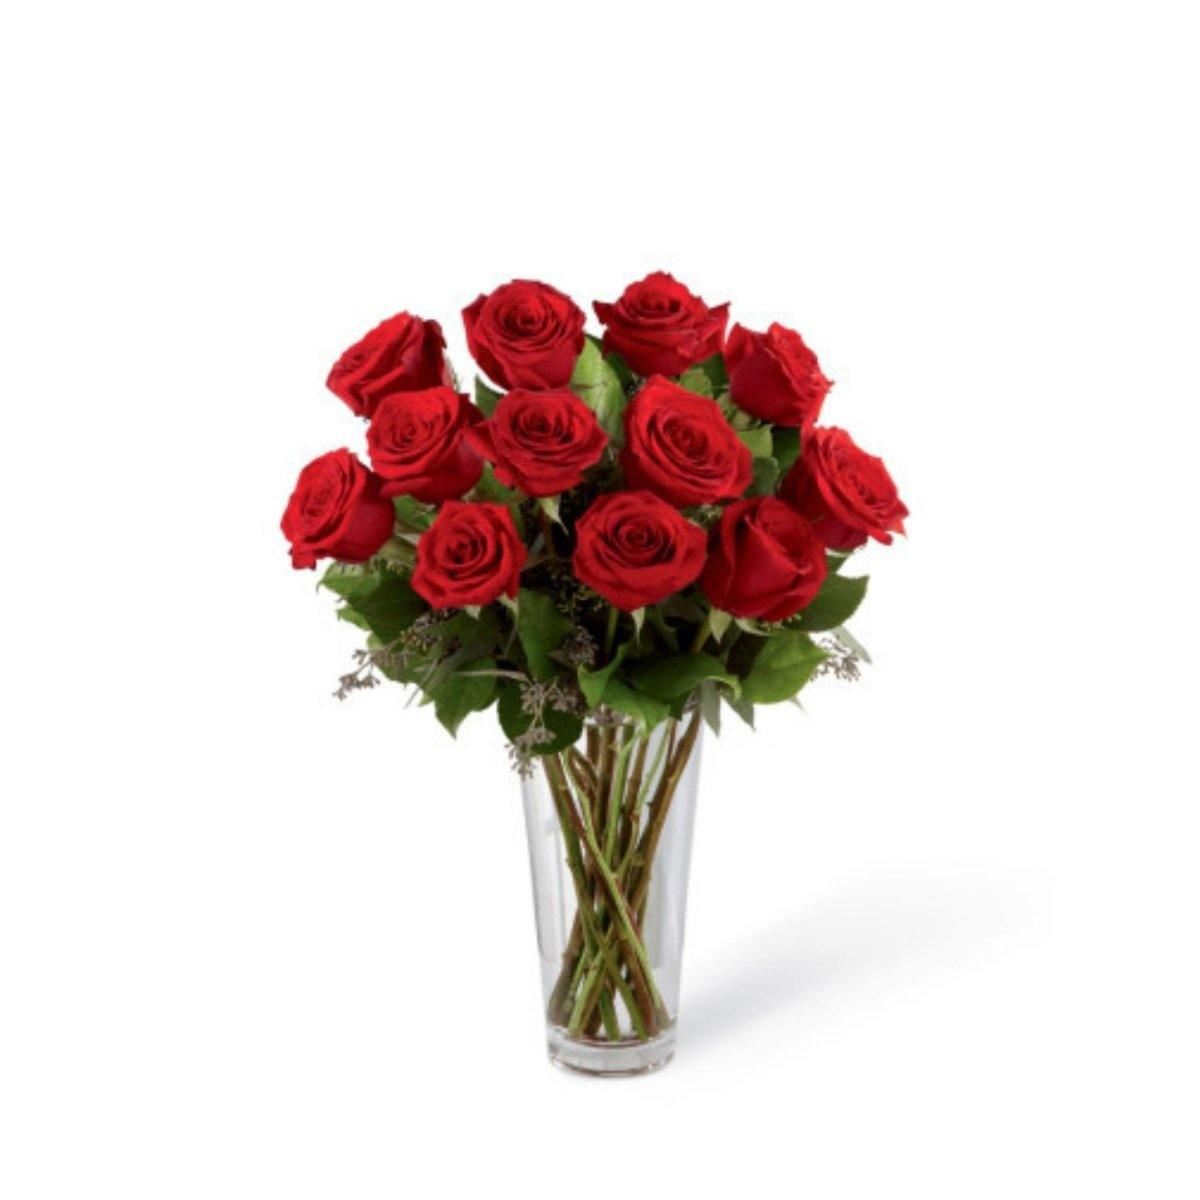 The FTD Red Rose Sympathy Bouquet - Shalimar Flower Shop